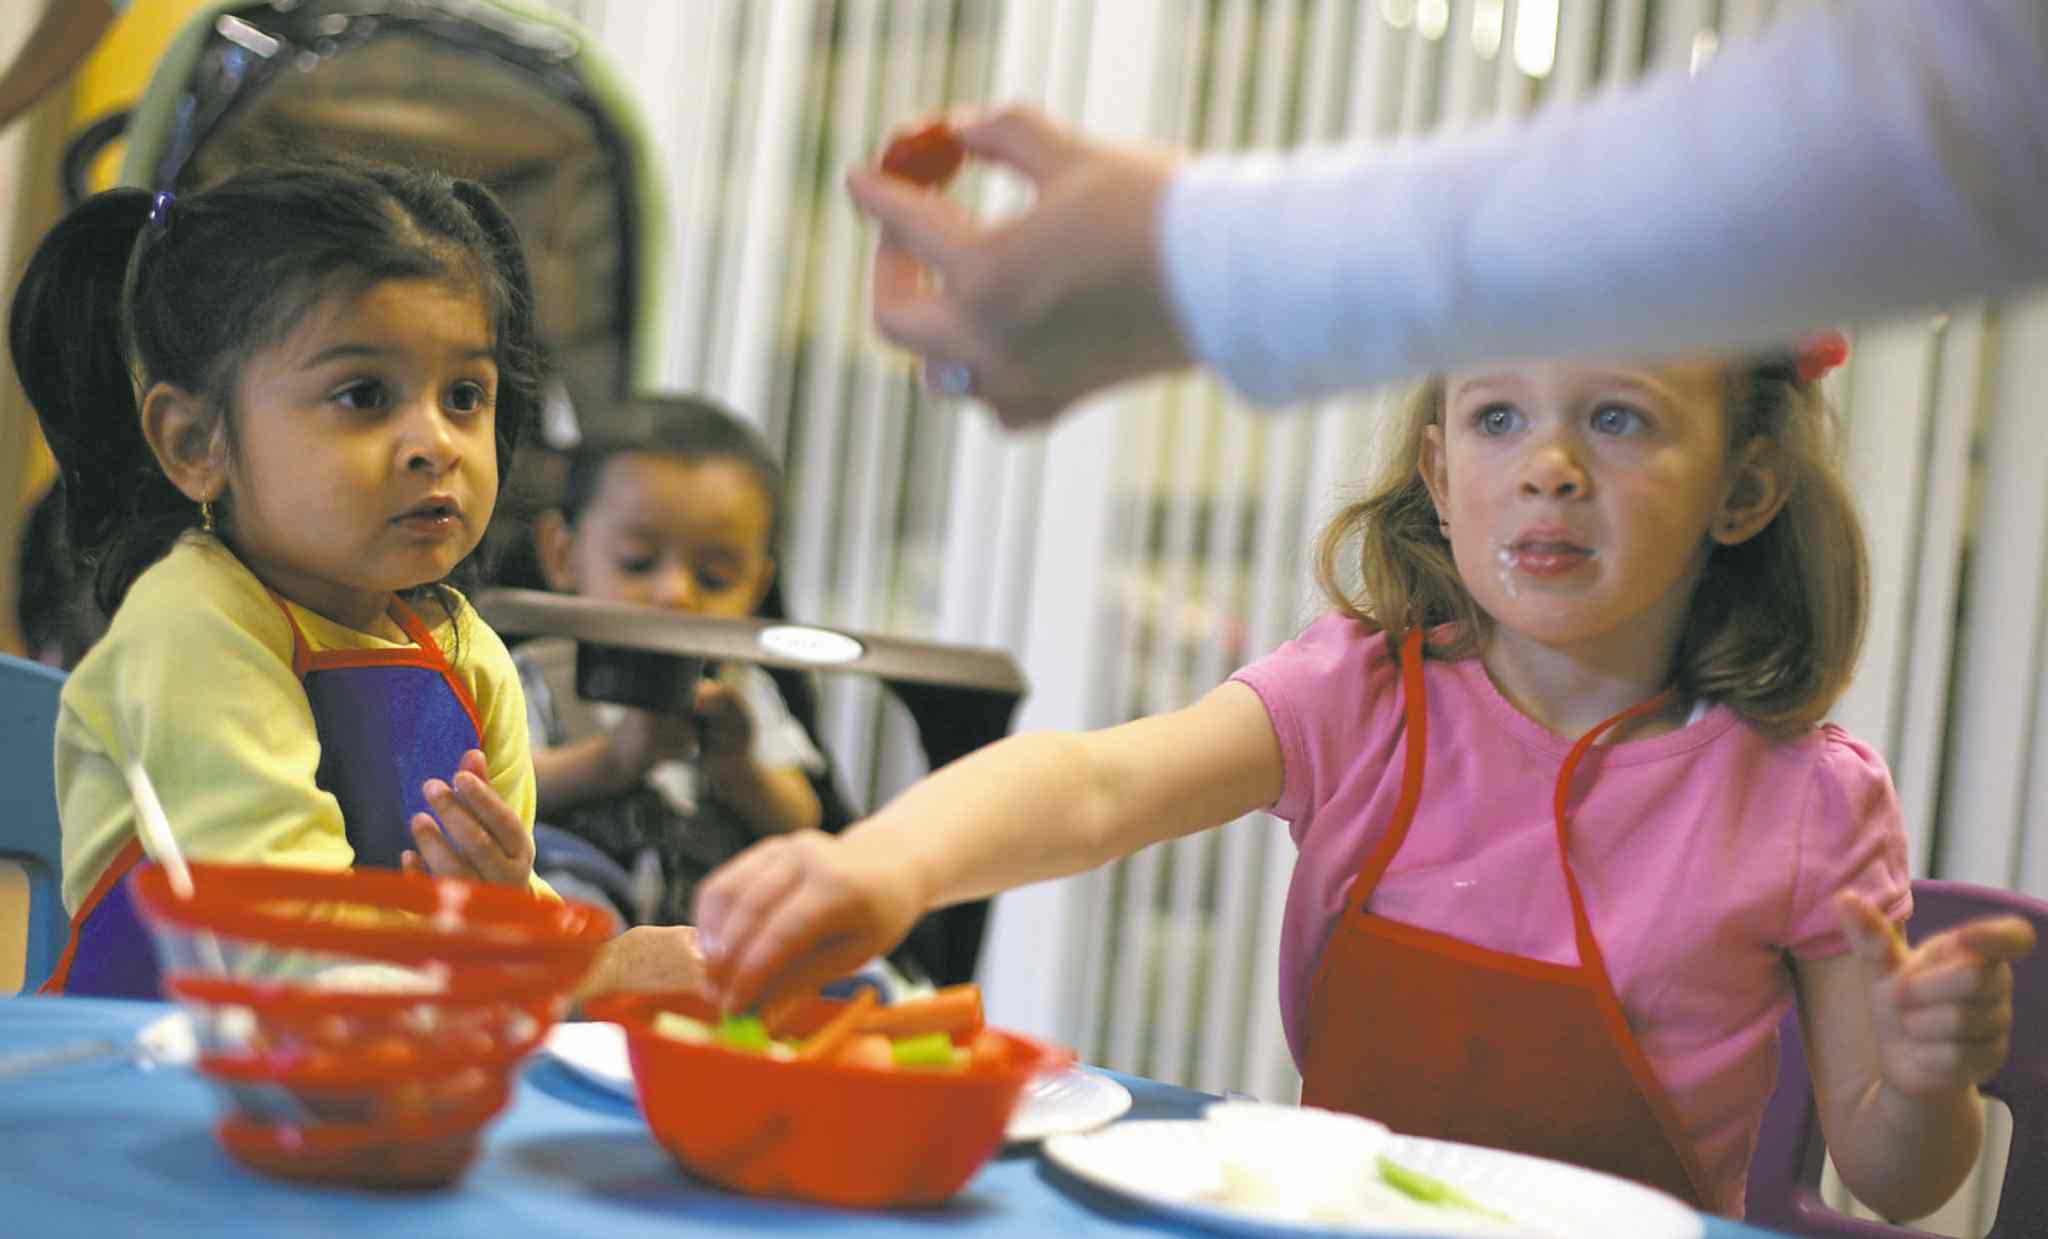 Sakina Vohra, 2, and Tatum Groves, 2, learn how to dip vegetables in ranch dressing during a cooking class.